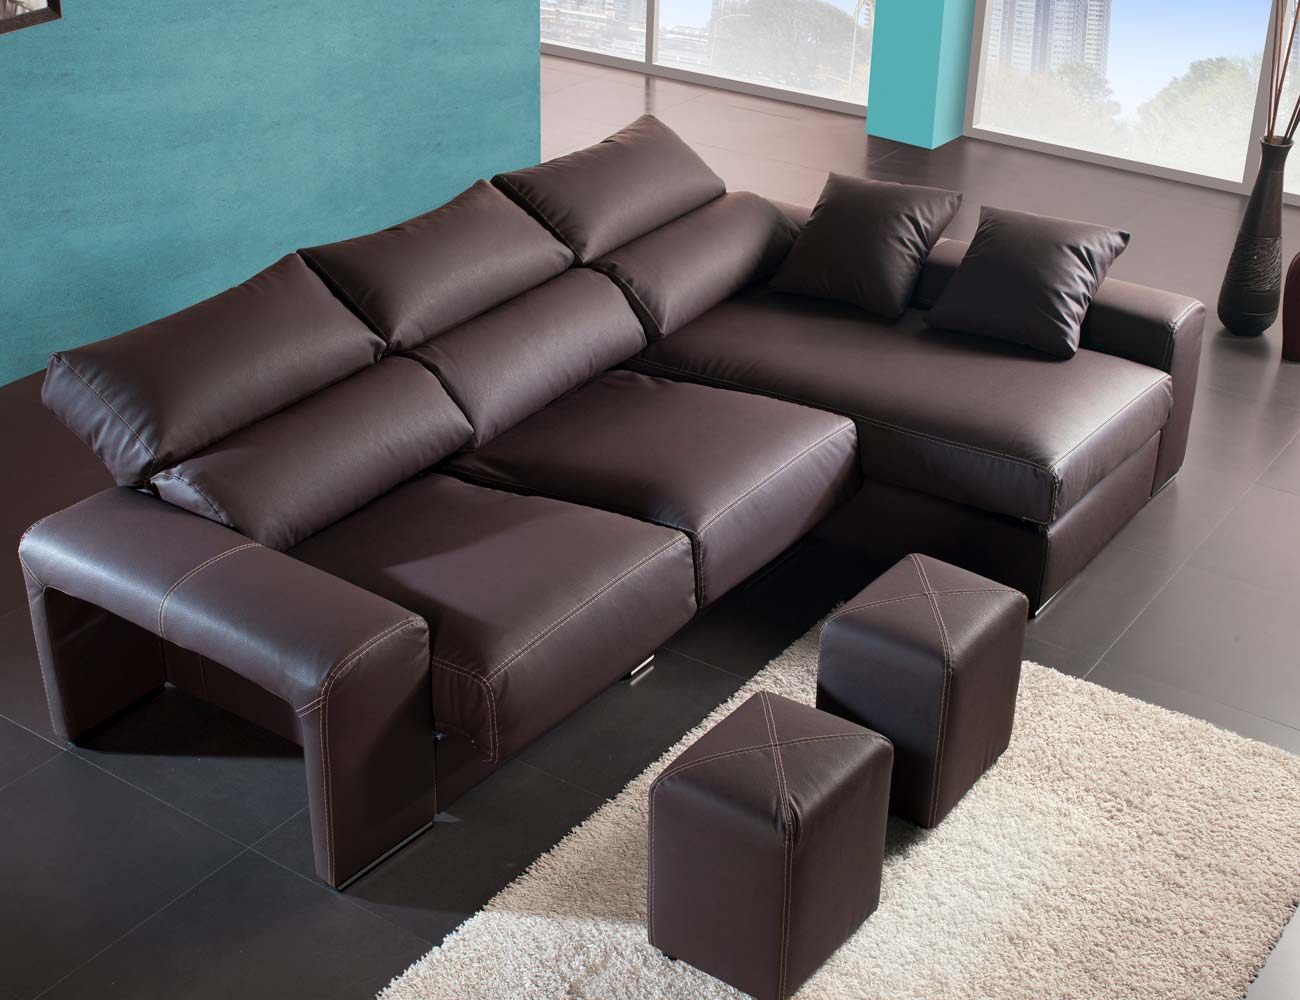 Sofa chaiselongue moderno polipiel chocolate poufs taburetes7